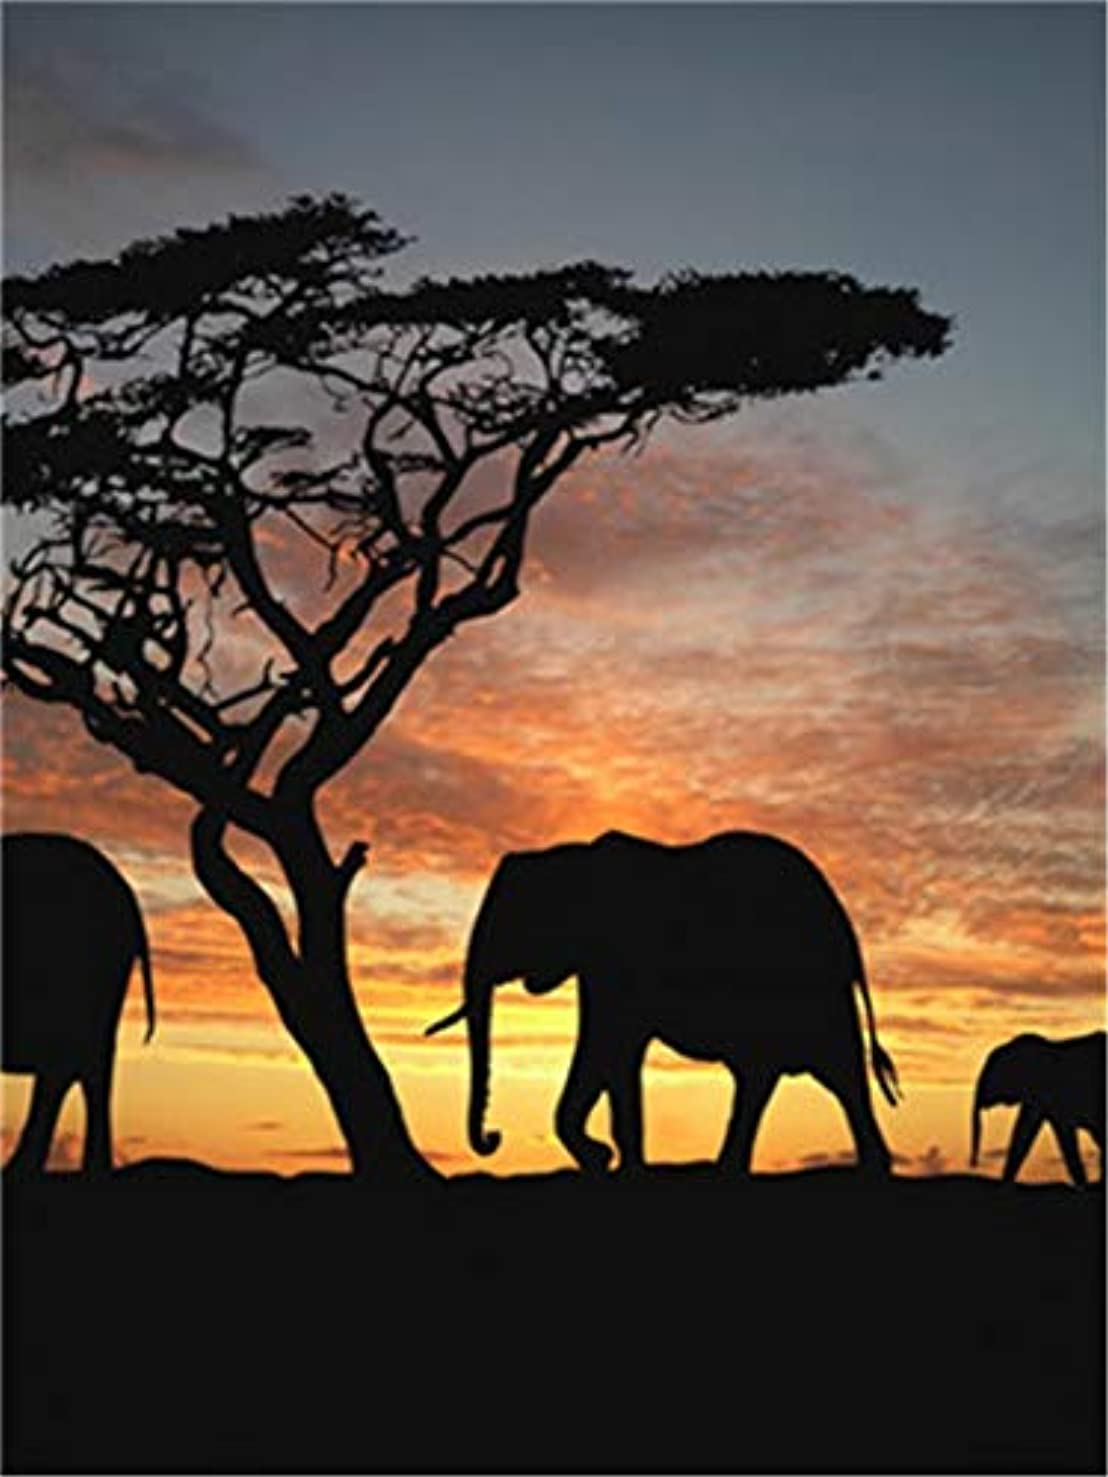 Paint by Numbers Kits DIY Oil Painting Home Decor Wall Value Gift - Elephants at Sunset 16X20 Inch (Frame)